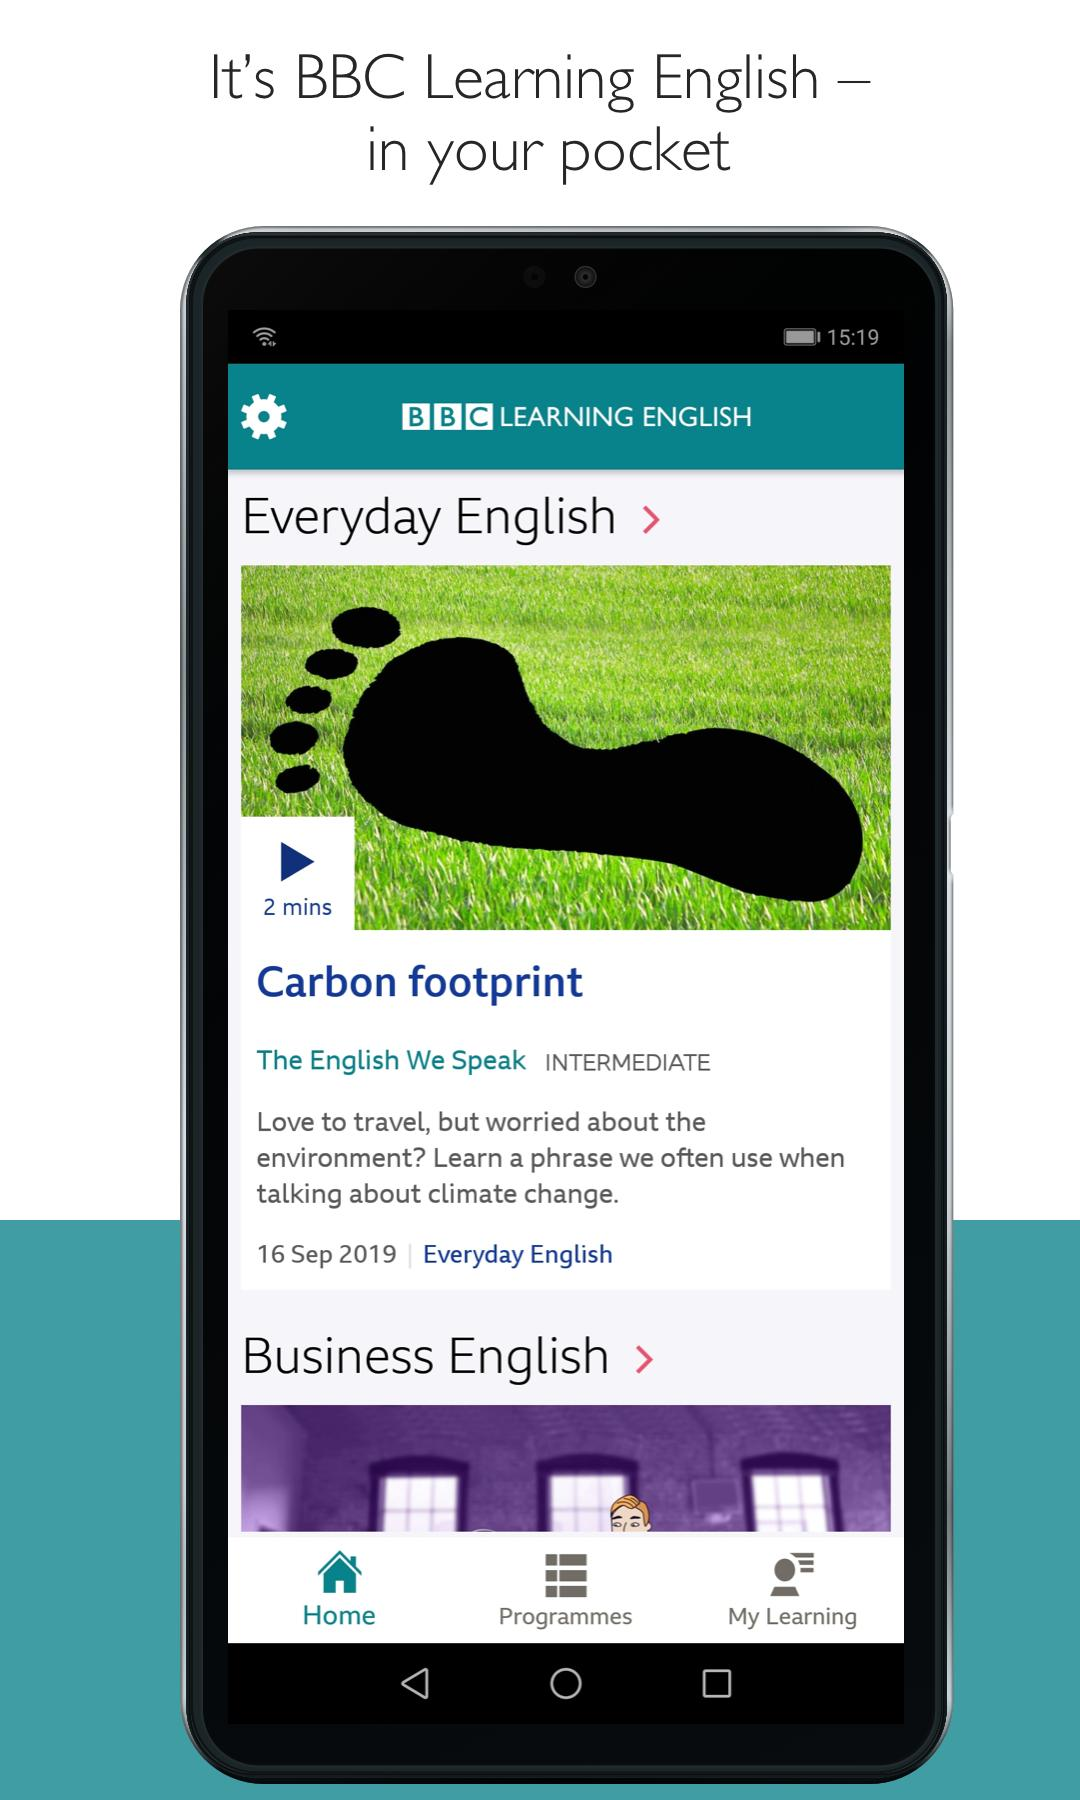 Bbc learning english on the app store.